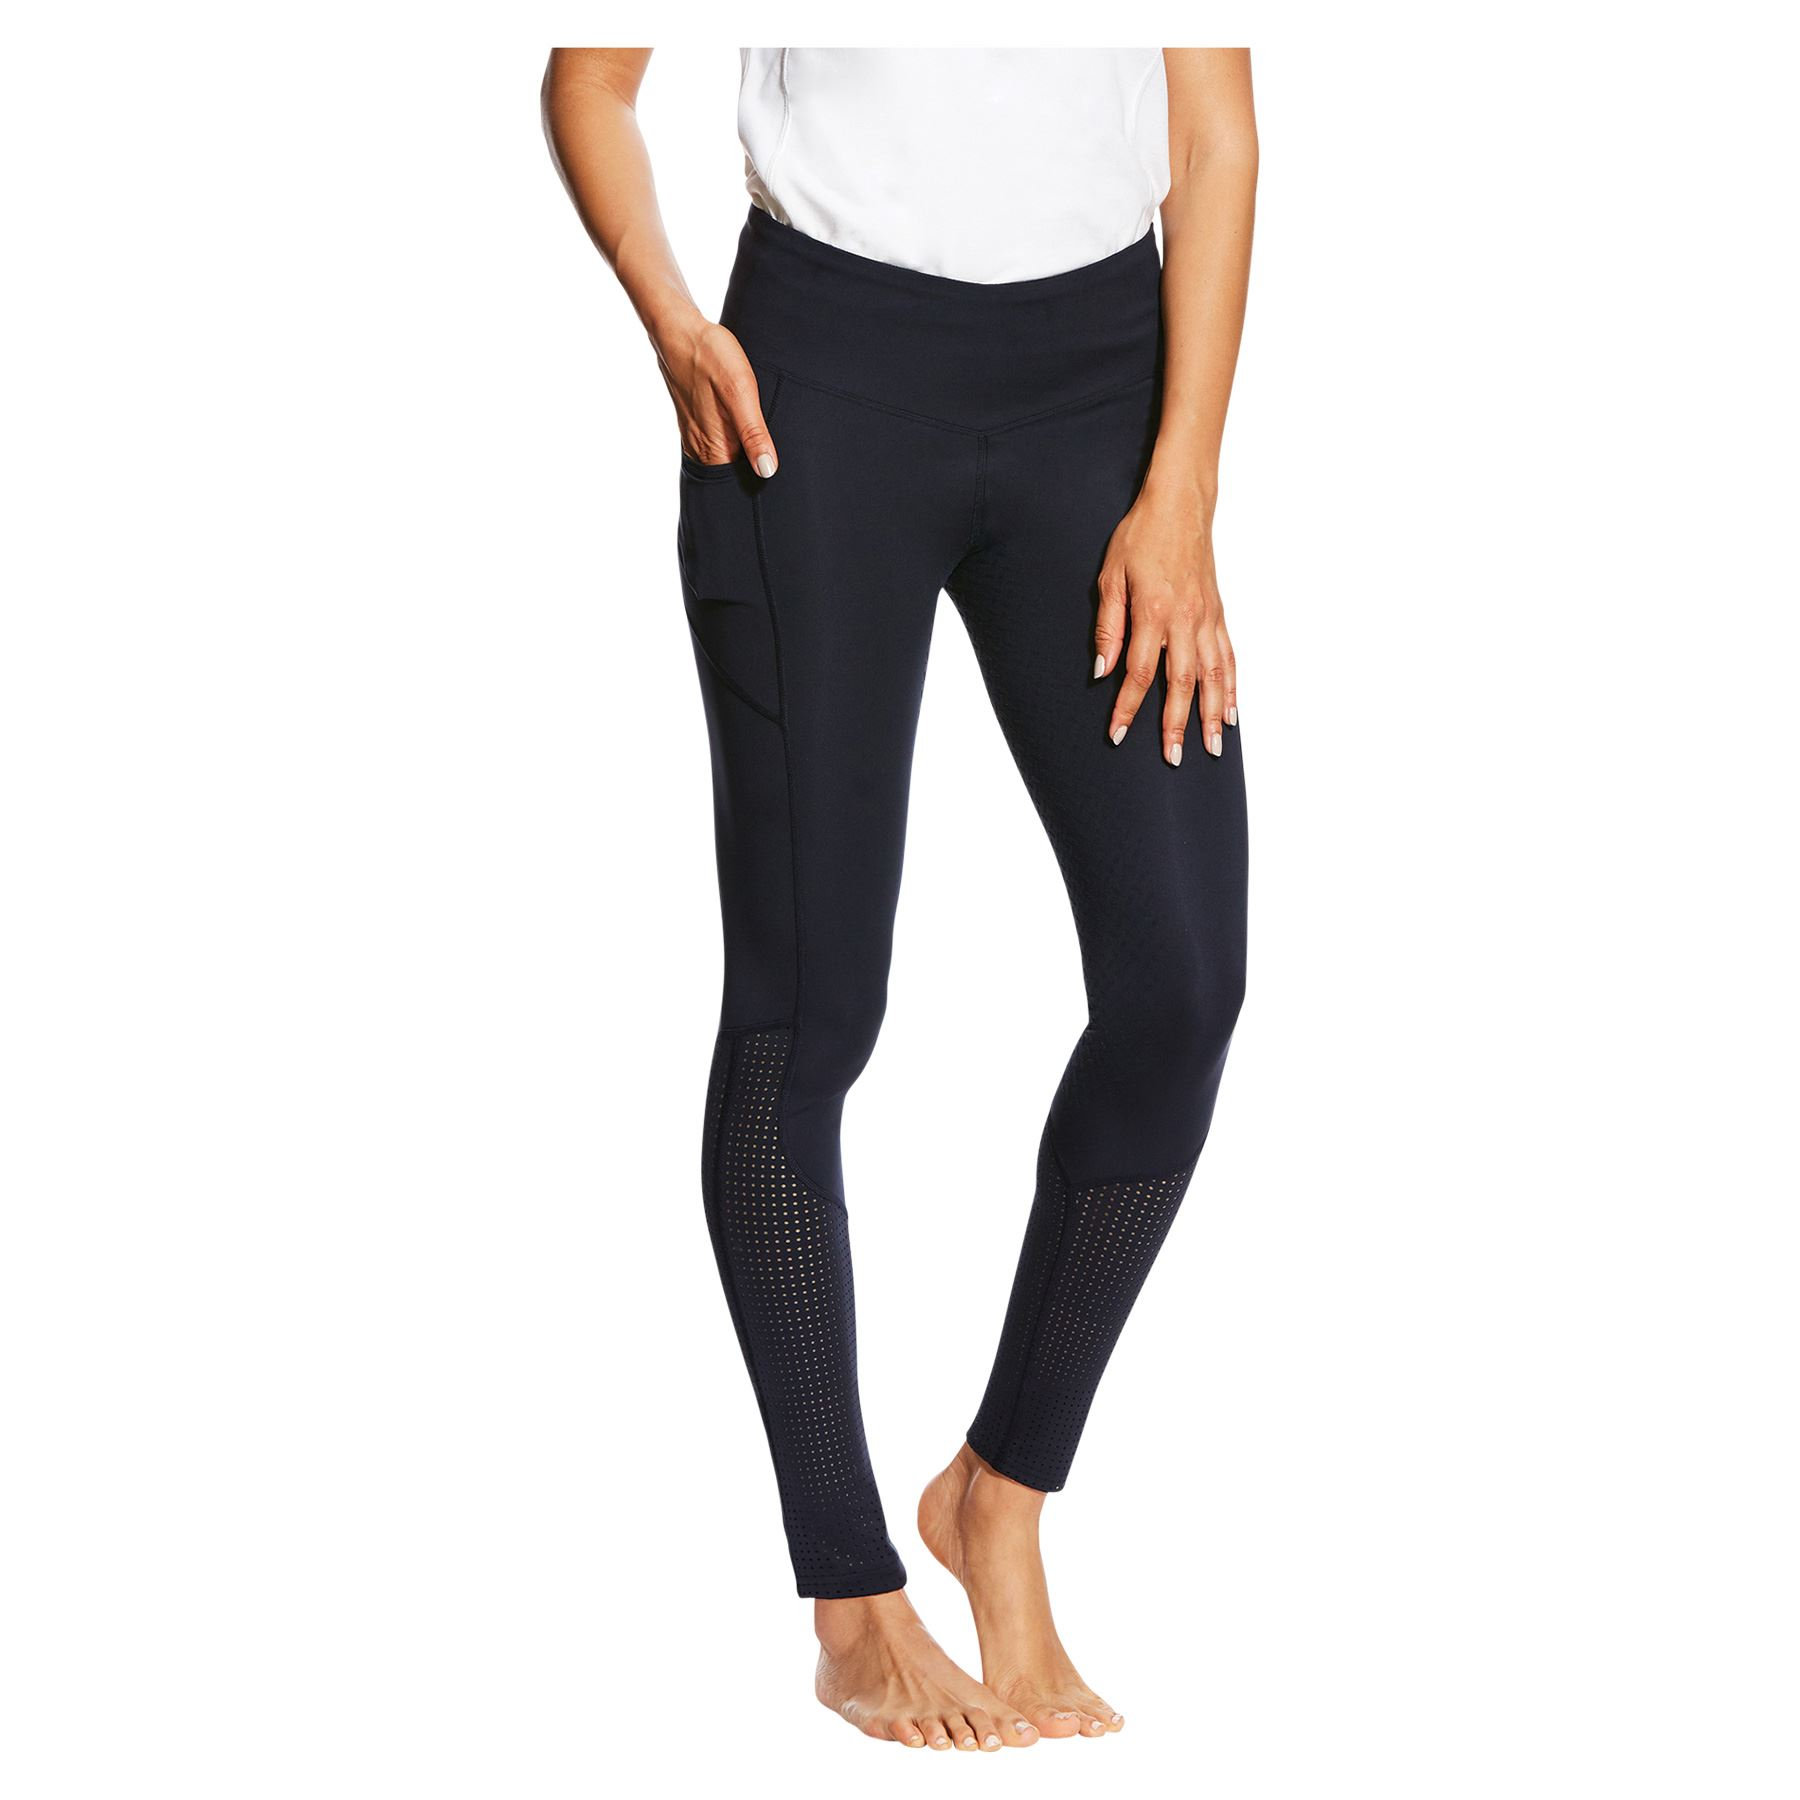 Lightweight Pull-on Ariat Women/'s Eos Full Seat Riding Tights